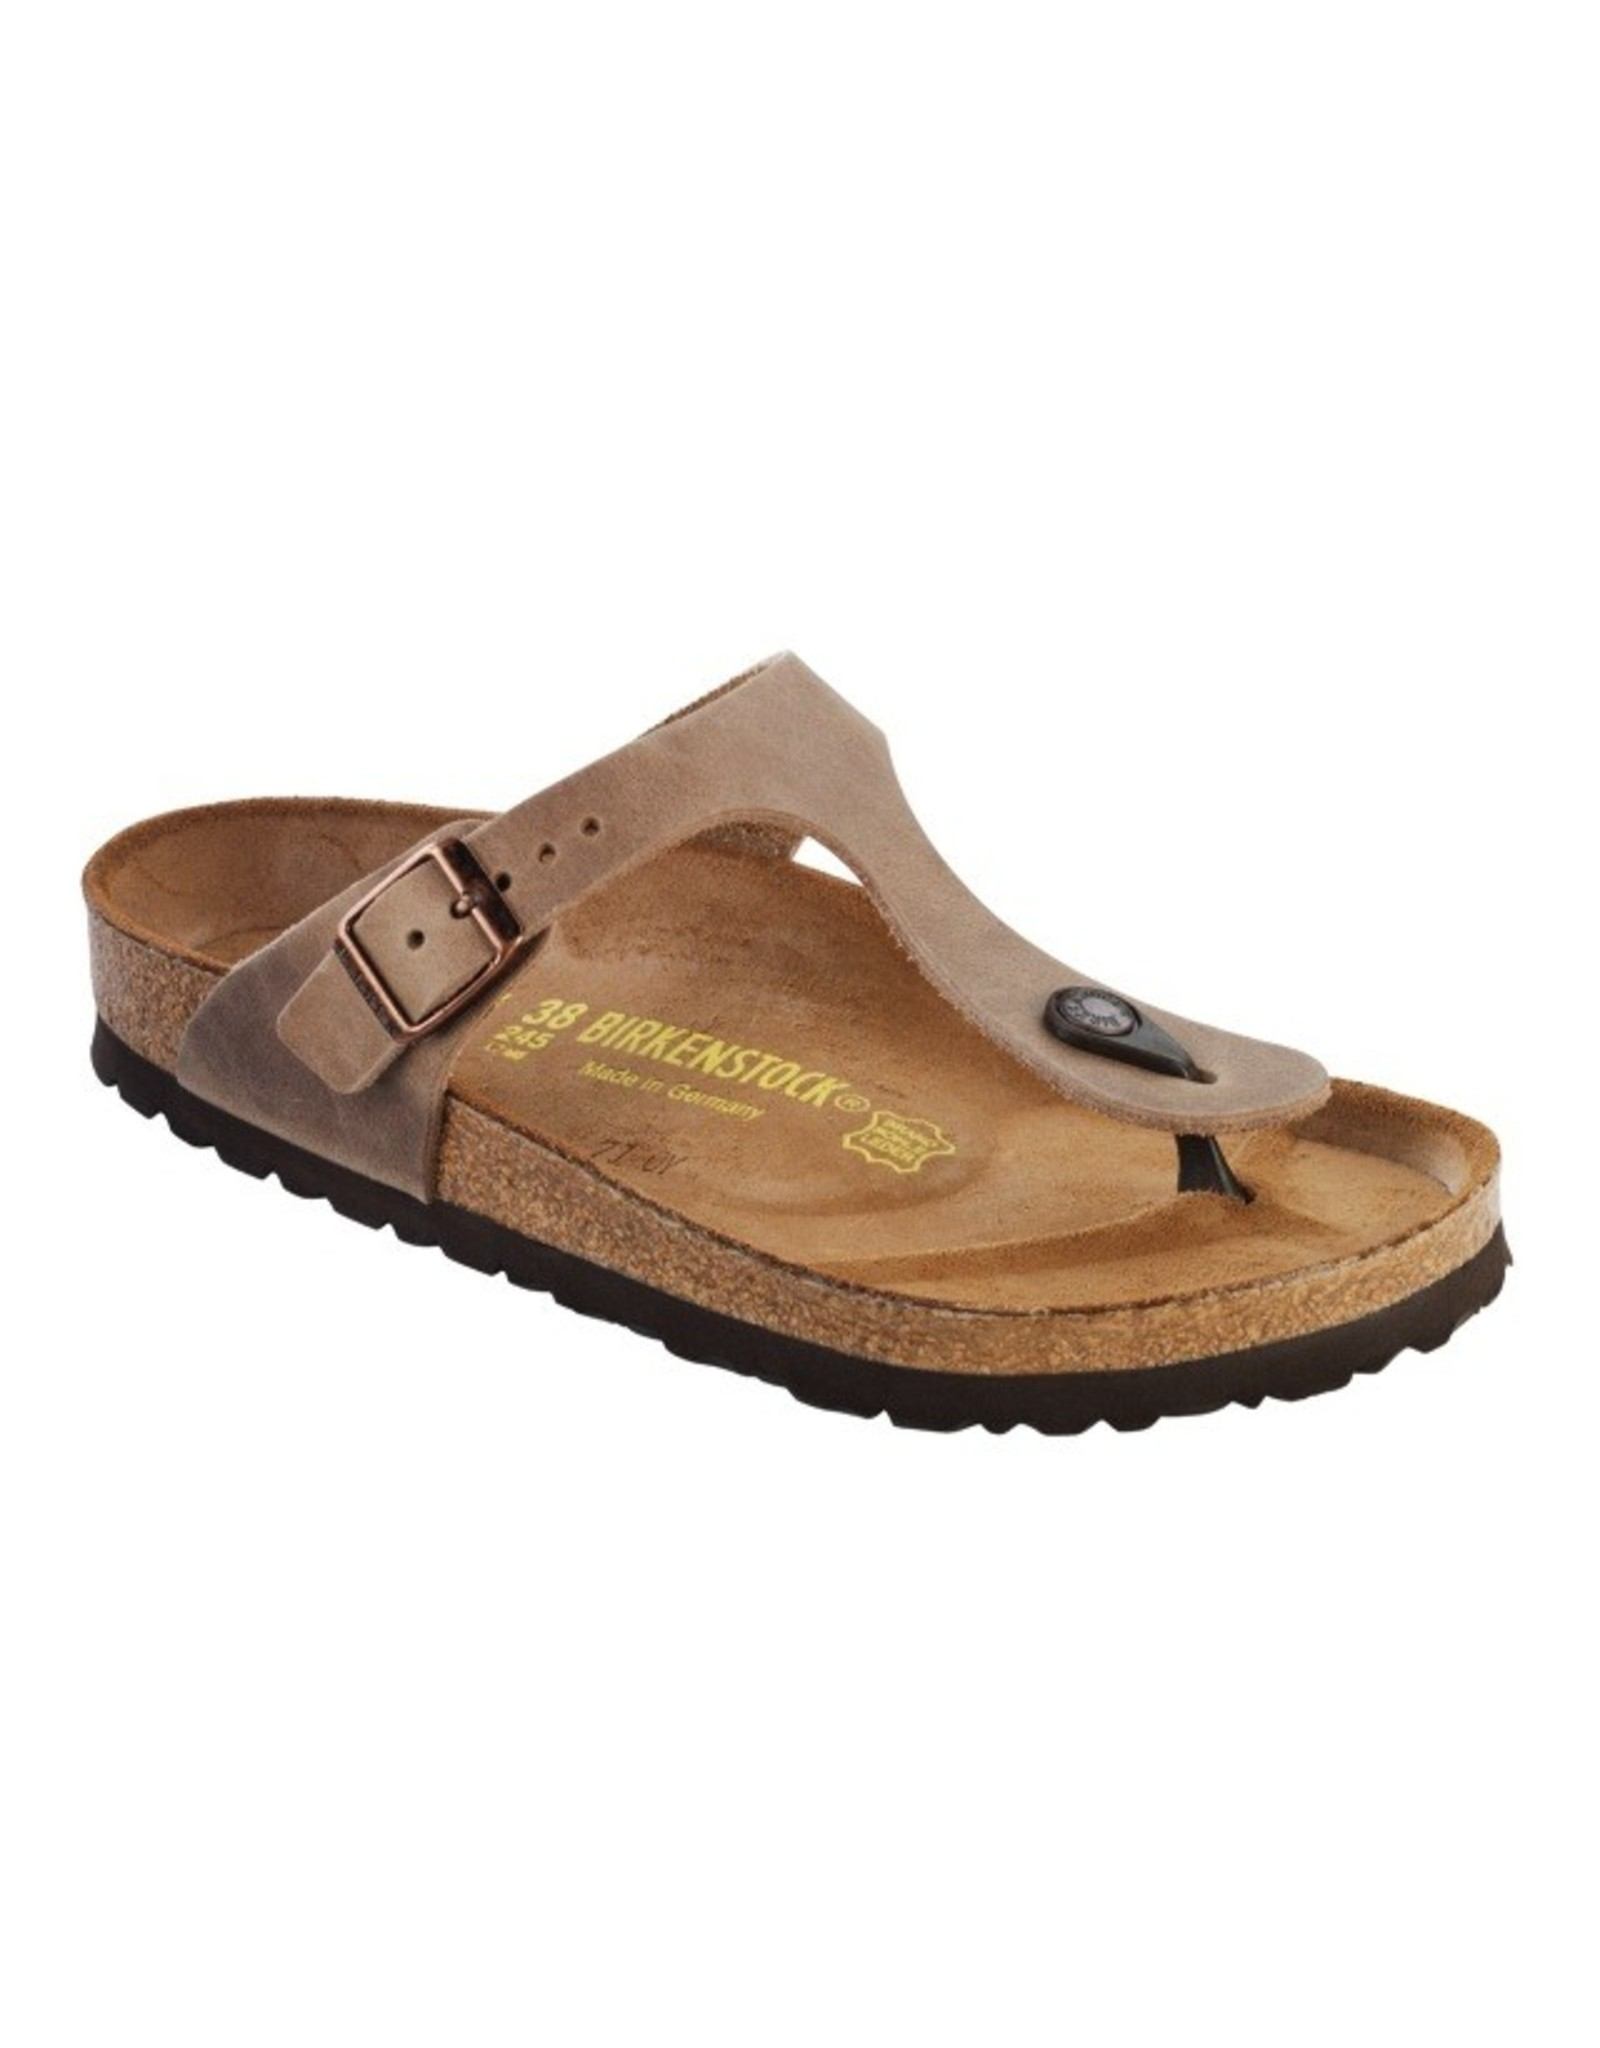 Birkenstock Tobacco Leather Gizeh Sandal